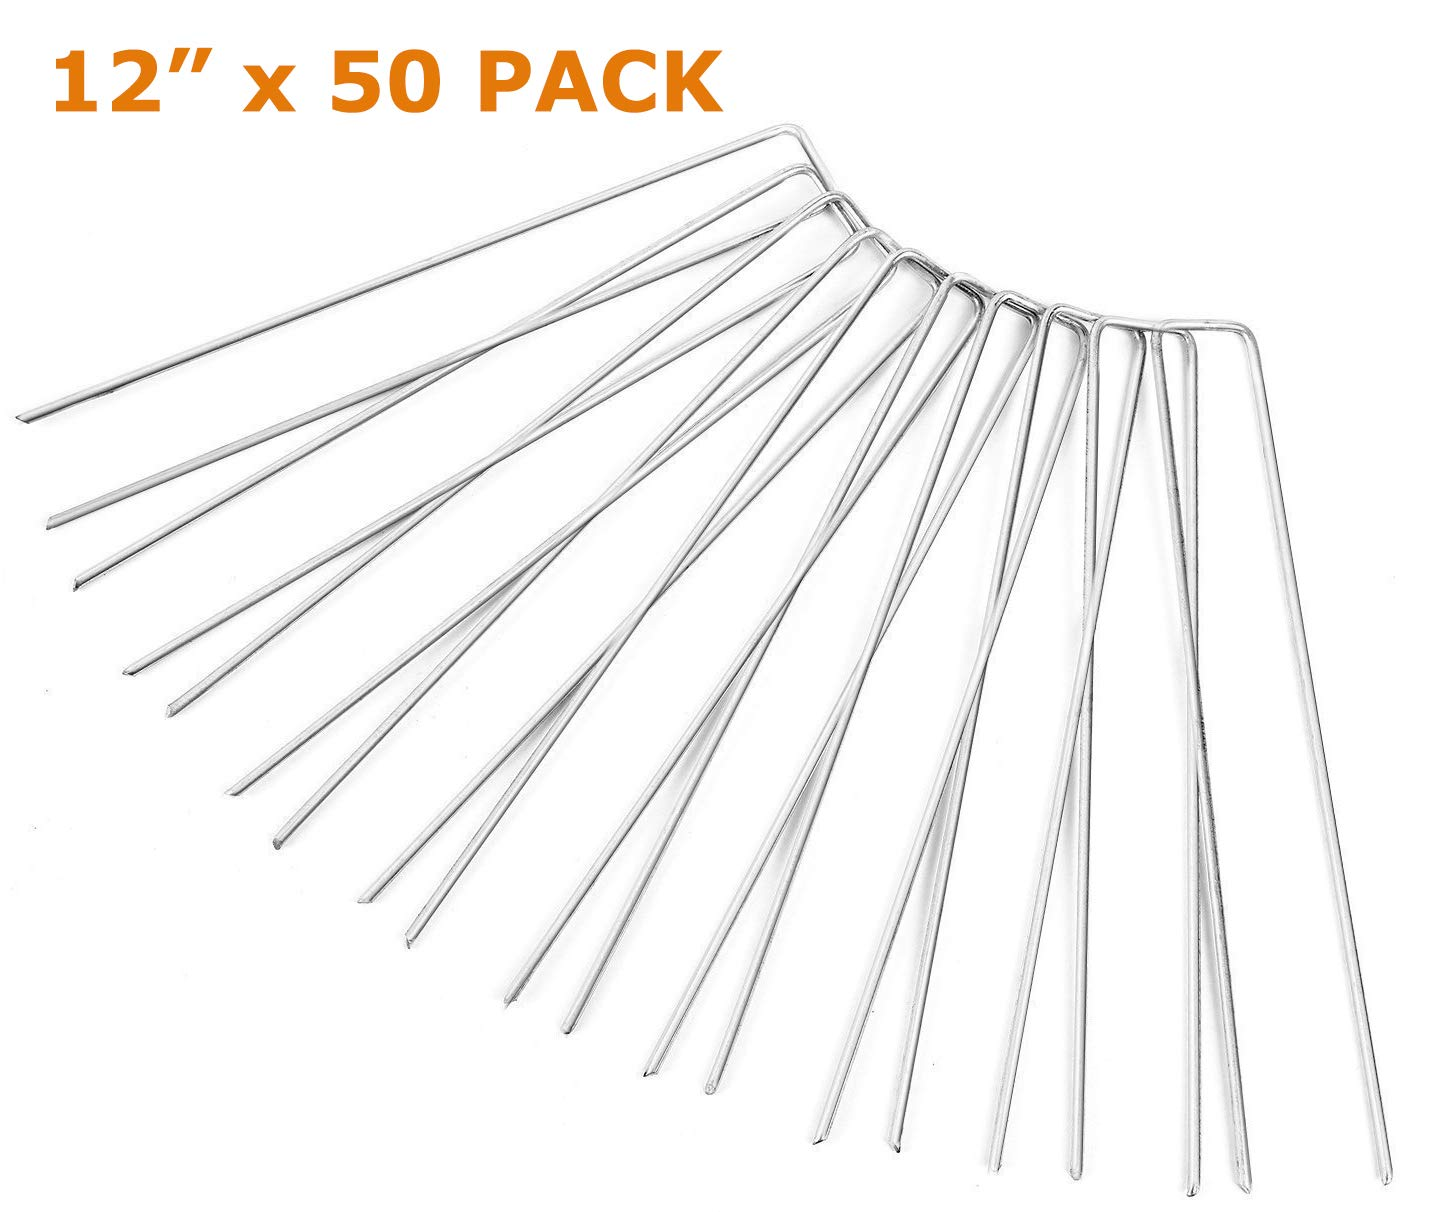 Ohuhu Garden Stake, 50-Pack 12-inch Galvanized Iron Ground Stakes/Tent Pegs/Garden Pegs/Lawn Staples Stakes Pins for Securing Garden Weed, Landscape Fabric, Ground Sheets and Fence Anchors